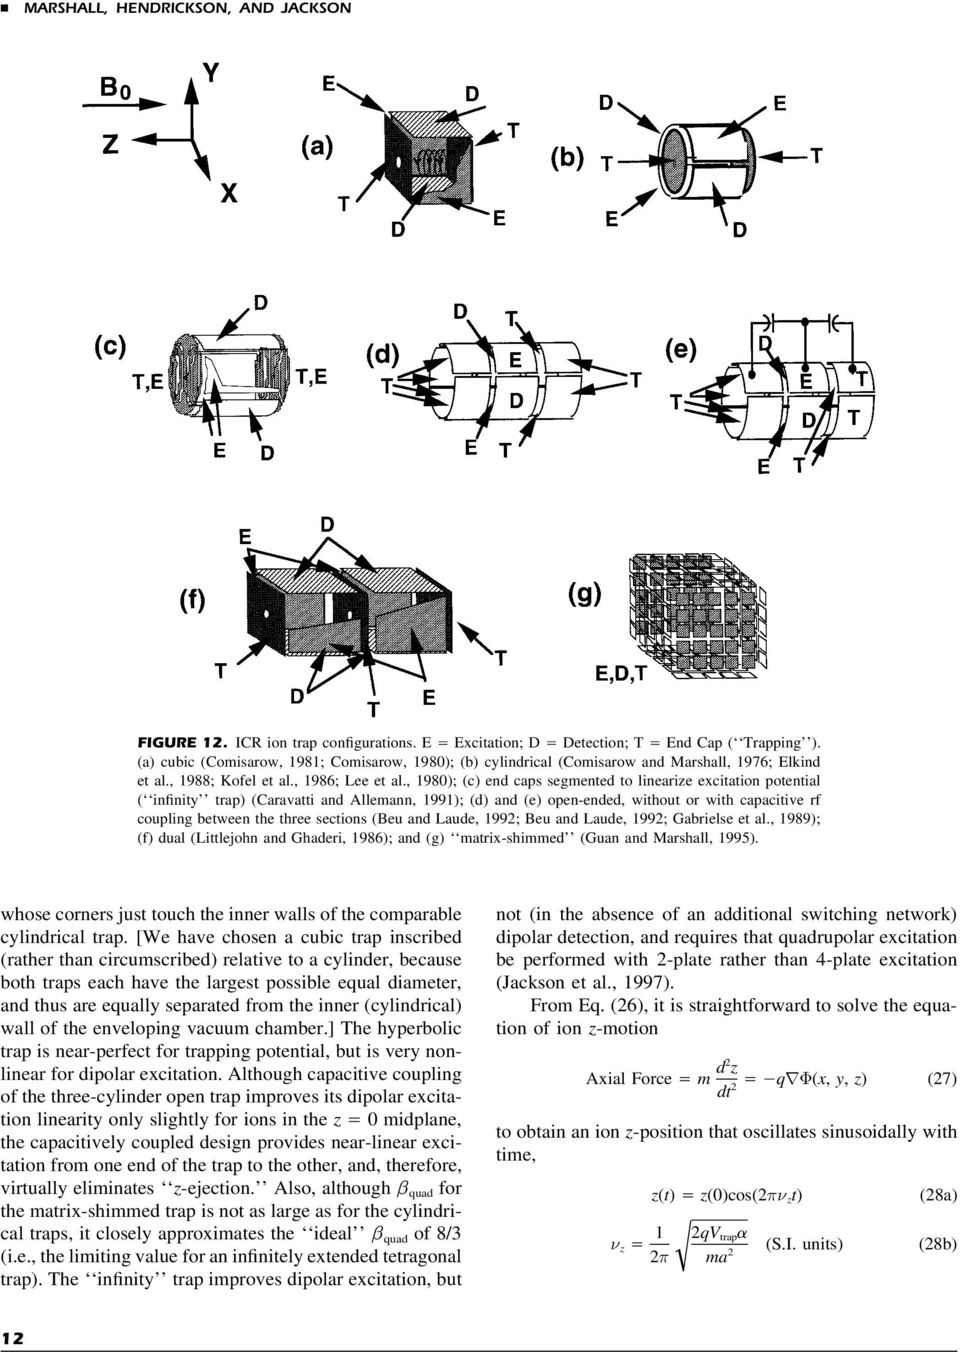 , 1980); (c) end caps segmented to linearize excitation potential ( infinity trap) (Caravatti and Allemann, 1991); (d) and (e) open-ended, without or with capacitive rf coupling between the three